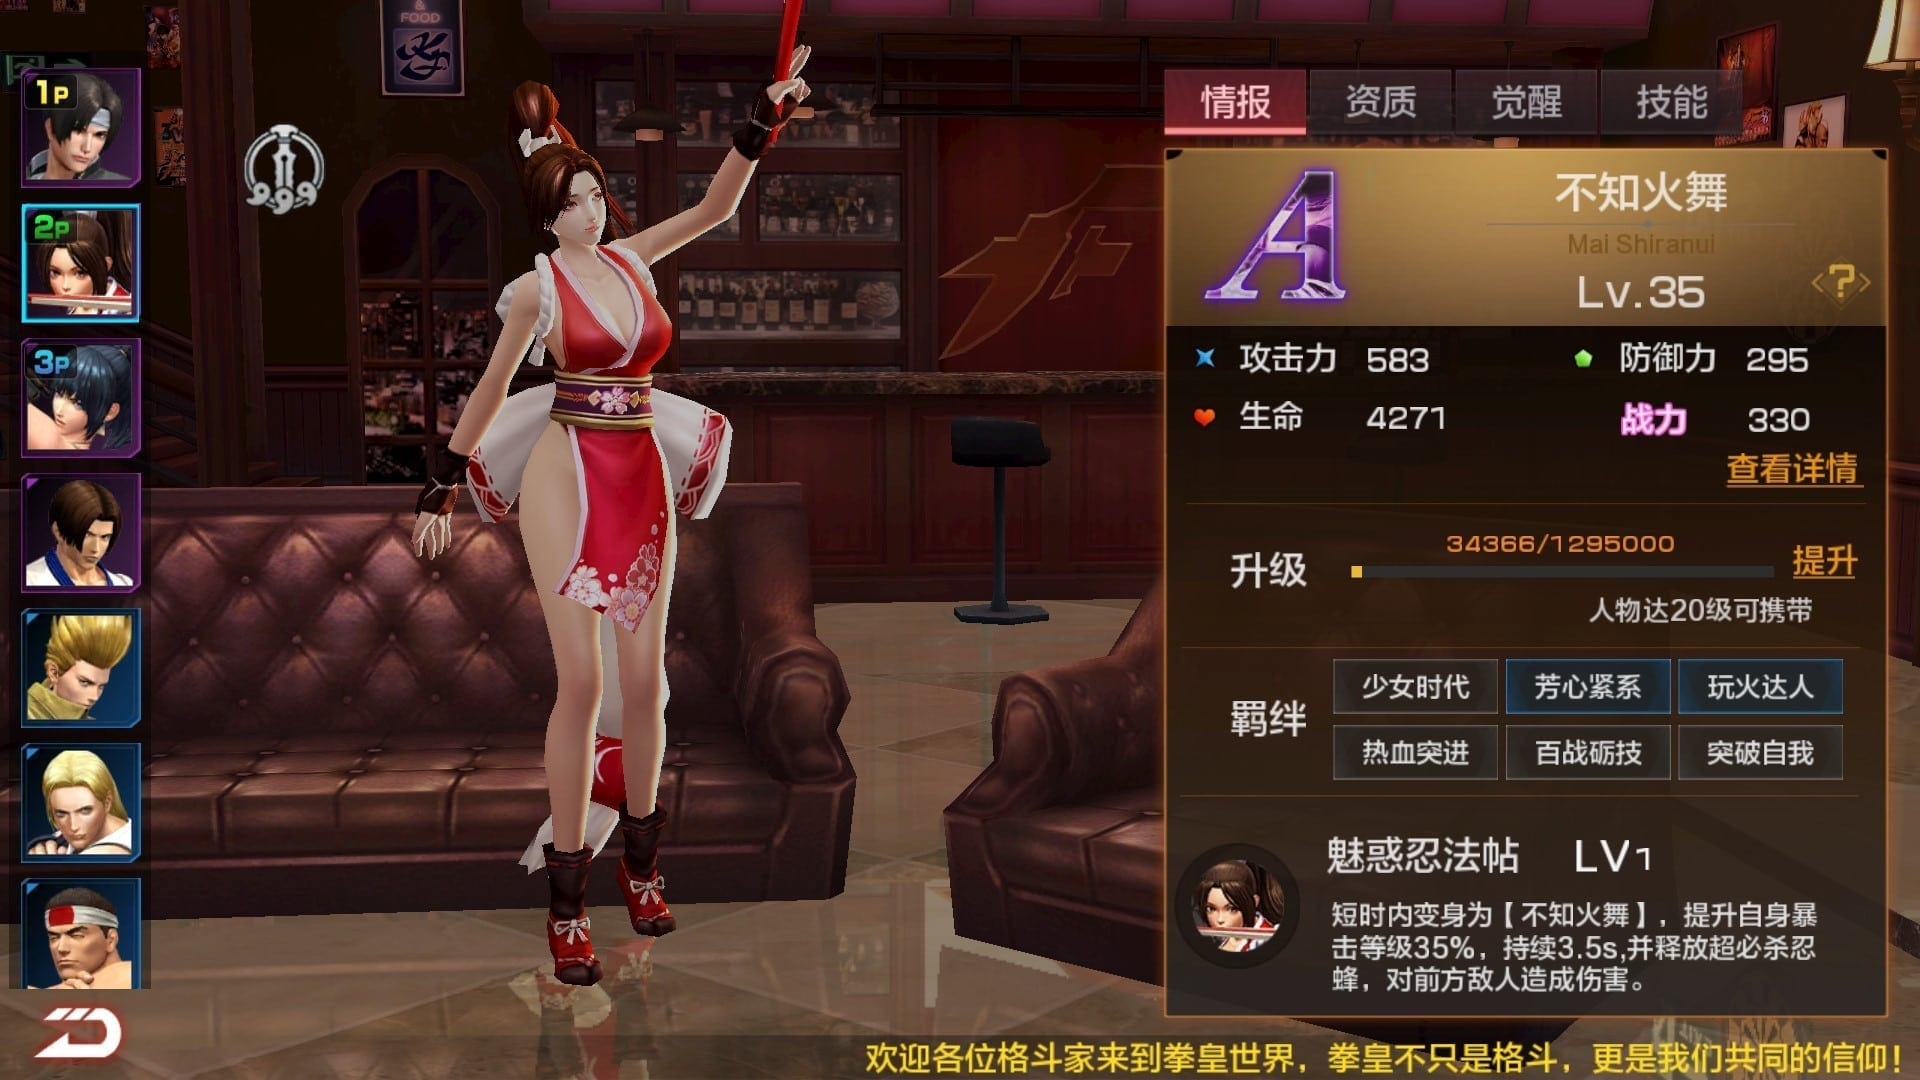 The King Of Fighters World Quick Look At New Chinese Mobile Images, Photos, Reviews